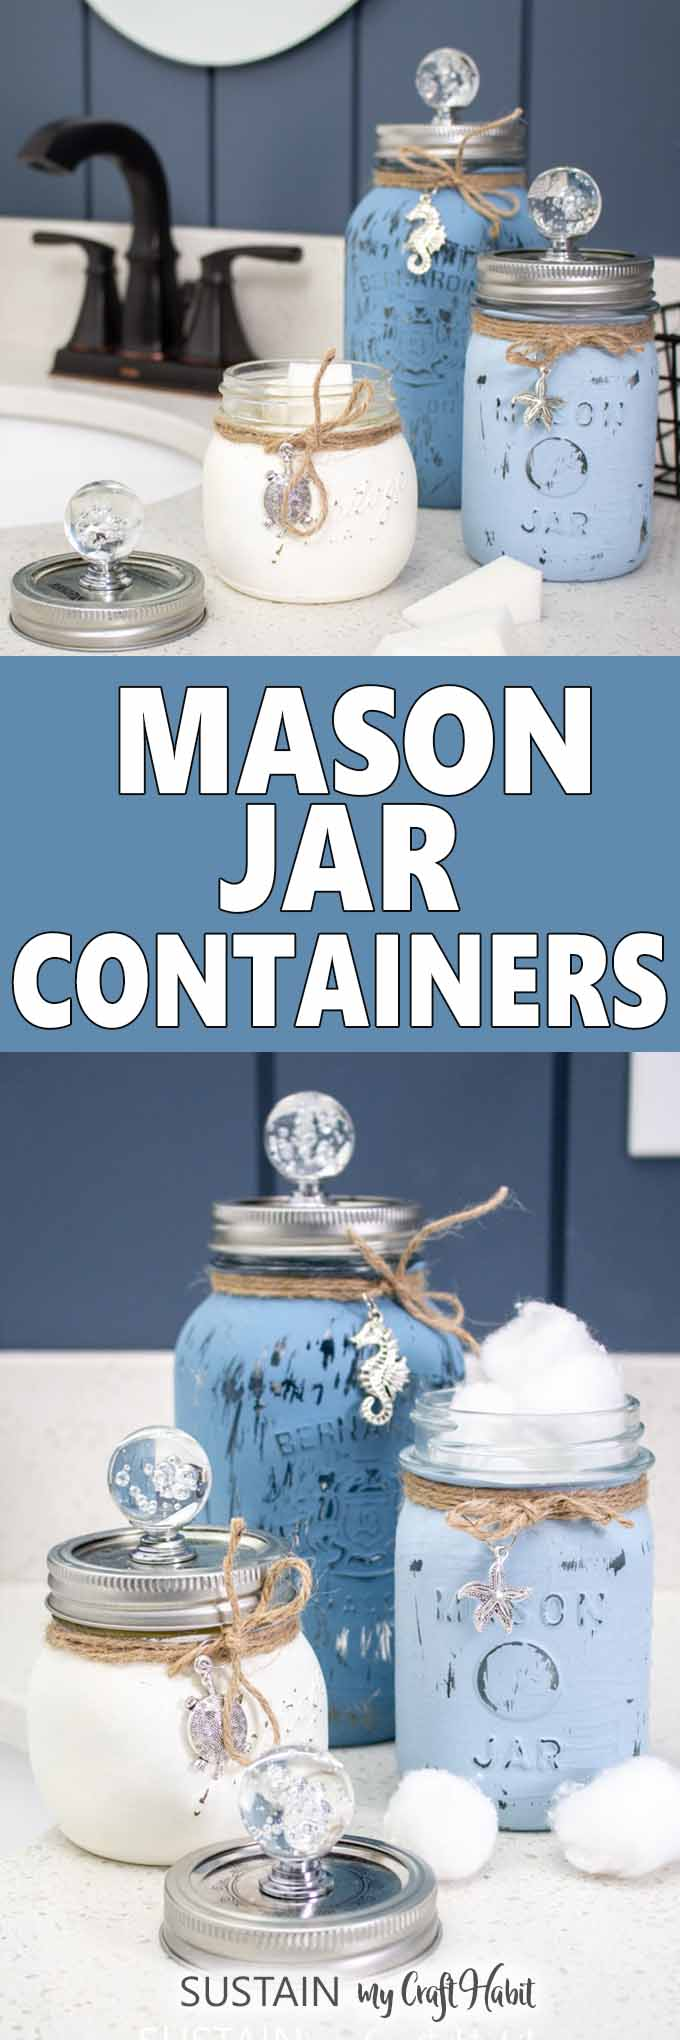 Beachy Diy Painted Mason Jars Containers With Video Sustain My Craft Habit